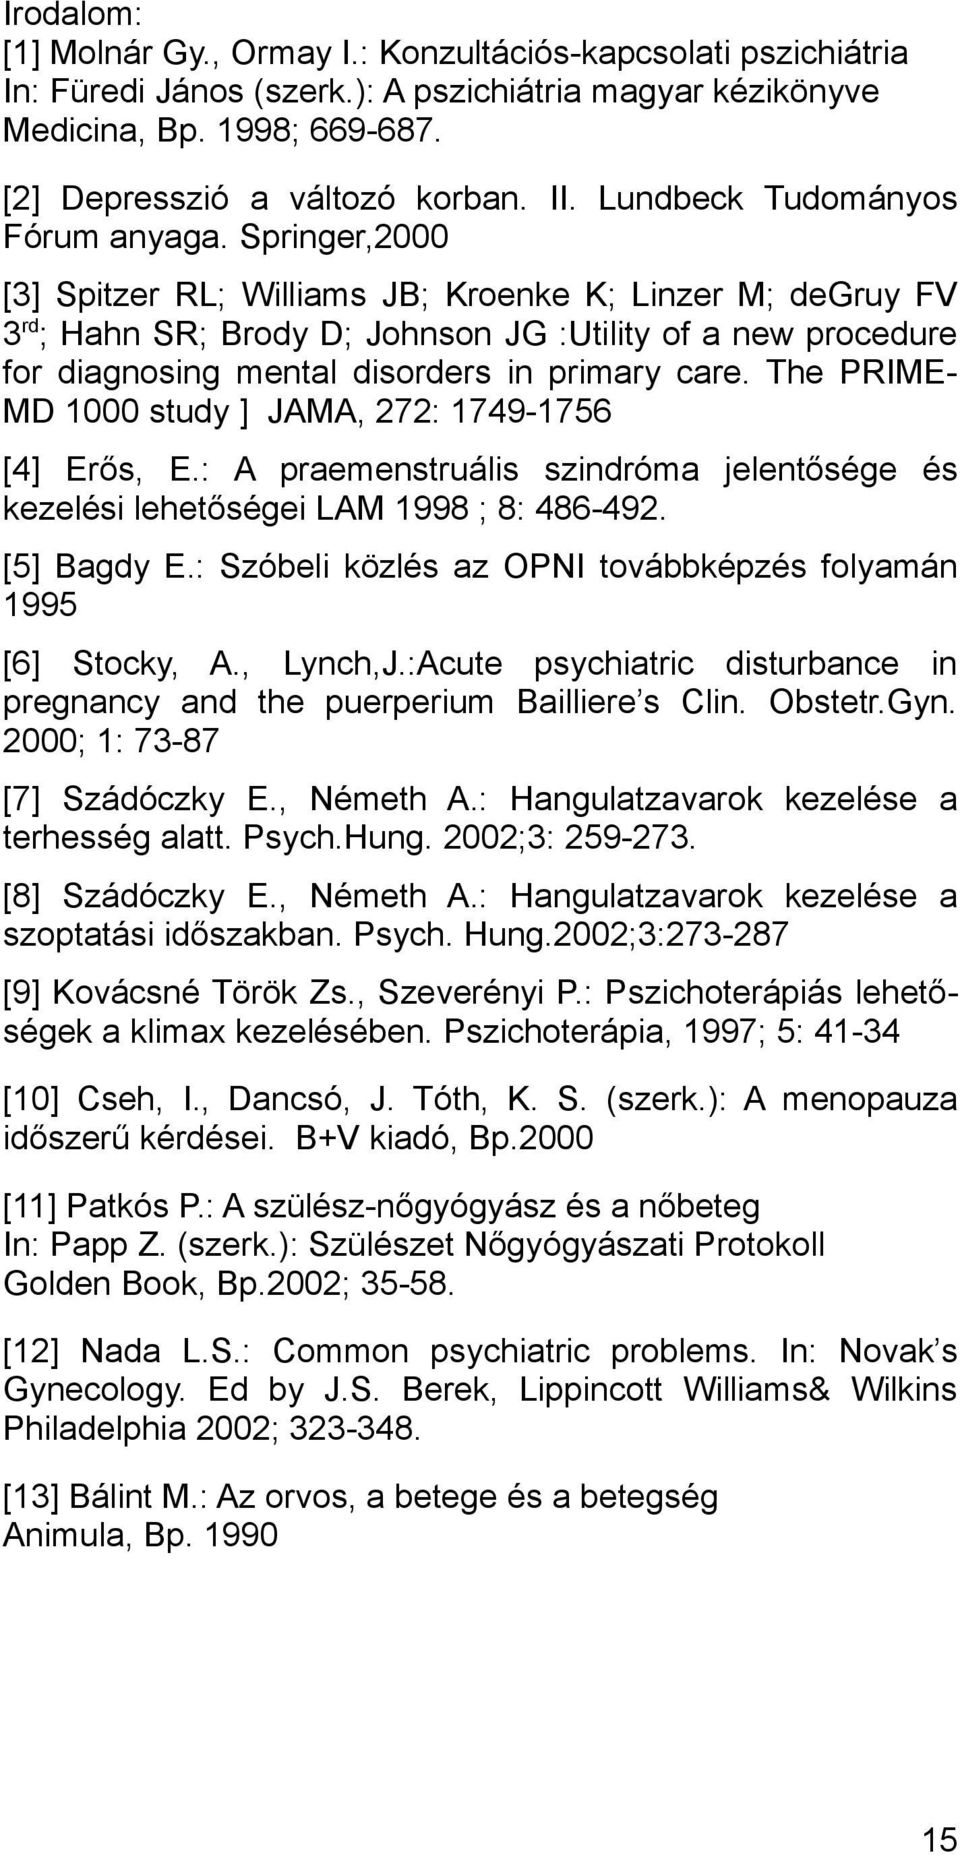 Springer,2000 [3] Spitzer RL; Williams JB; Kroenke K; Linzer M; degruy FV 3 rd ; Hahn SR; Brody D; Johnson JG :Utility of a new procedure for diagnosing mental disorders in primary care.